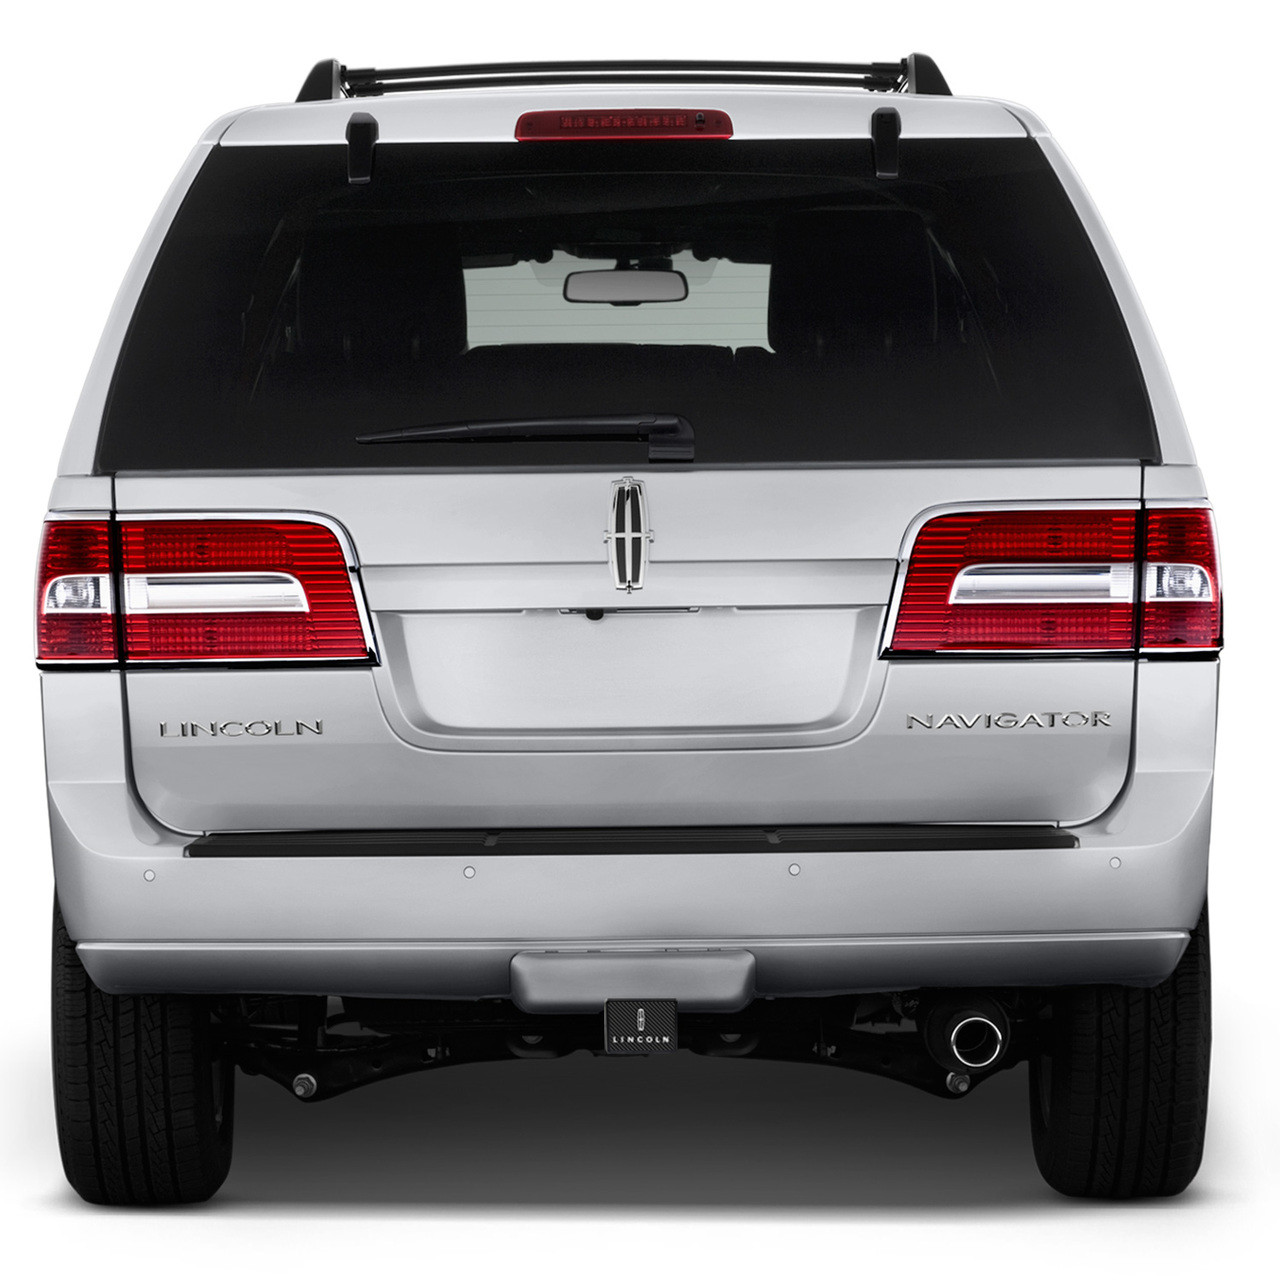 Made in USA iPick Image Lincoln Logo UV Graphic White Metal Plate on ABS Plastic 2 inch Tow Hitch Cover